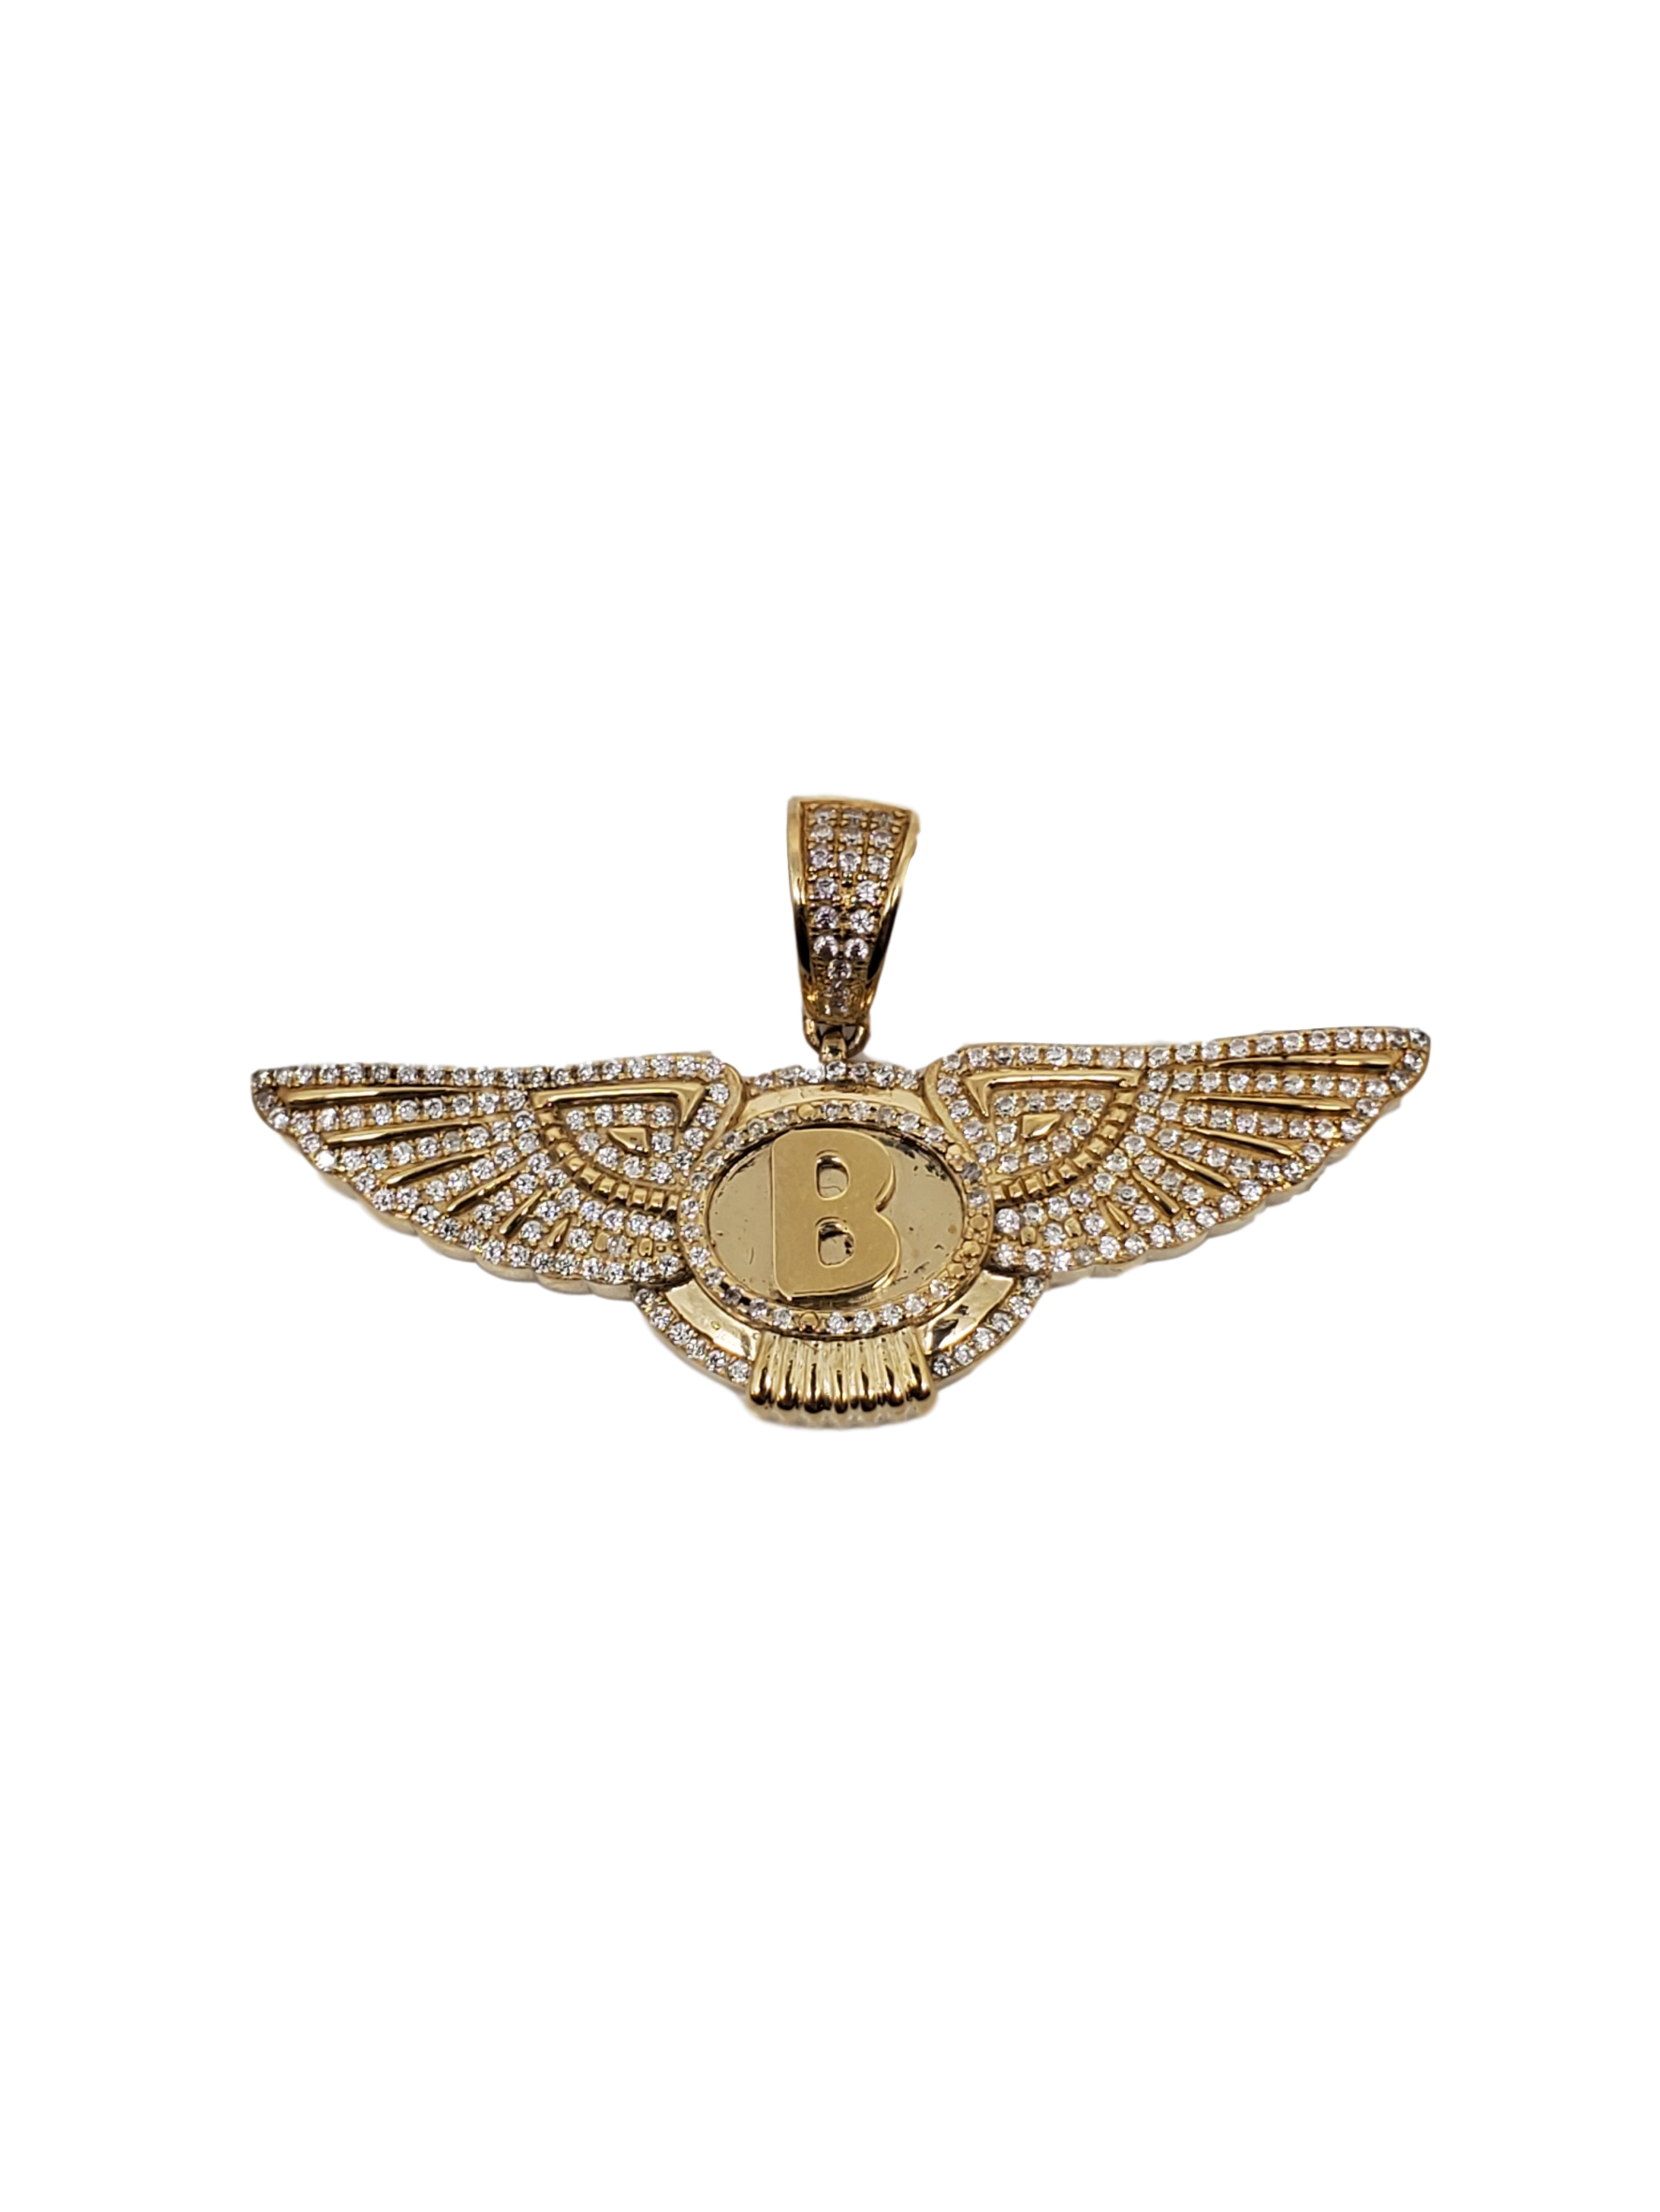 Bentley pendentif -2020 en or 10k